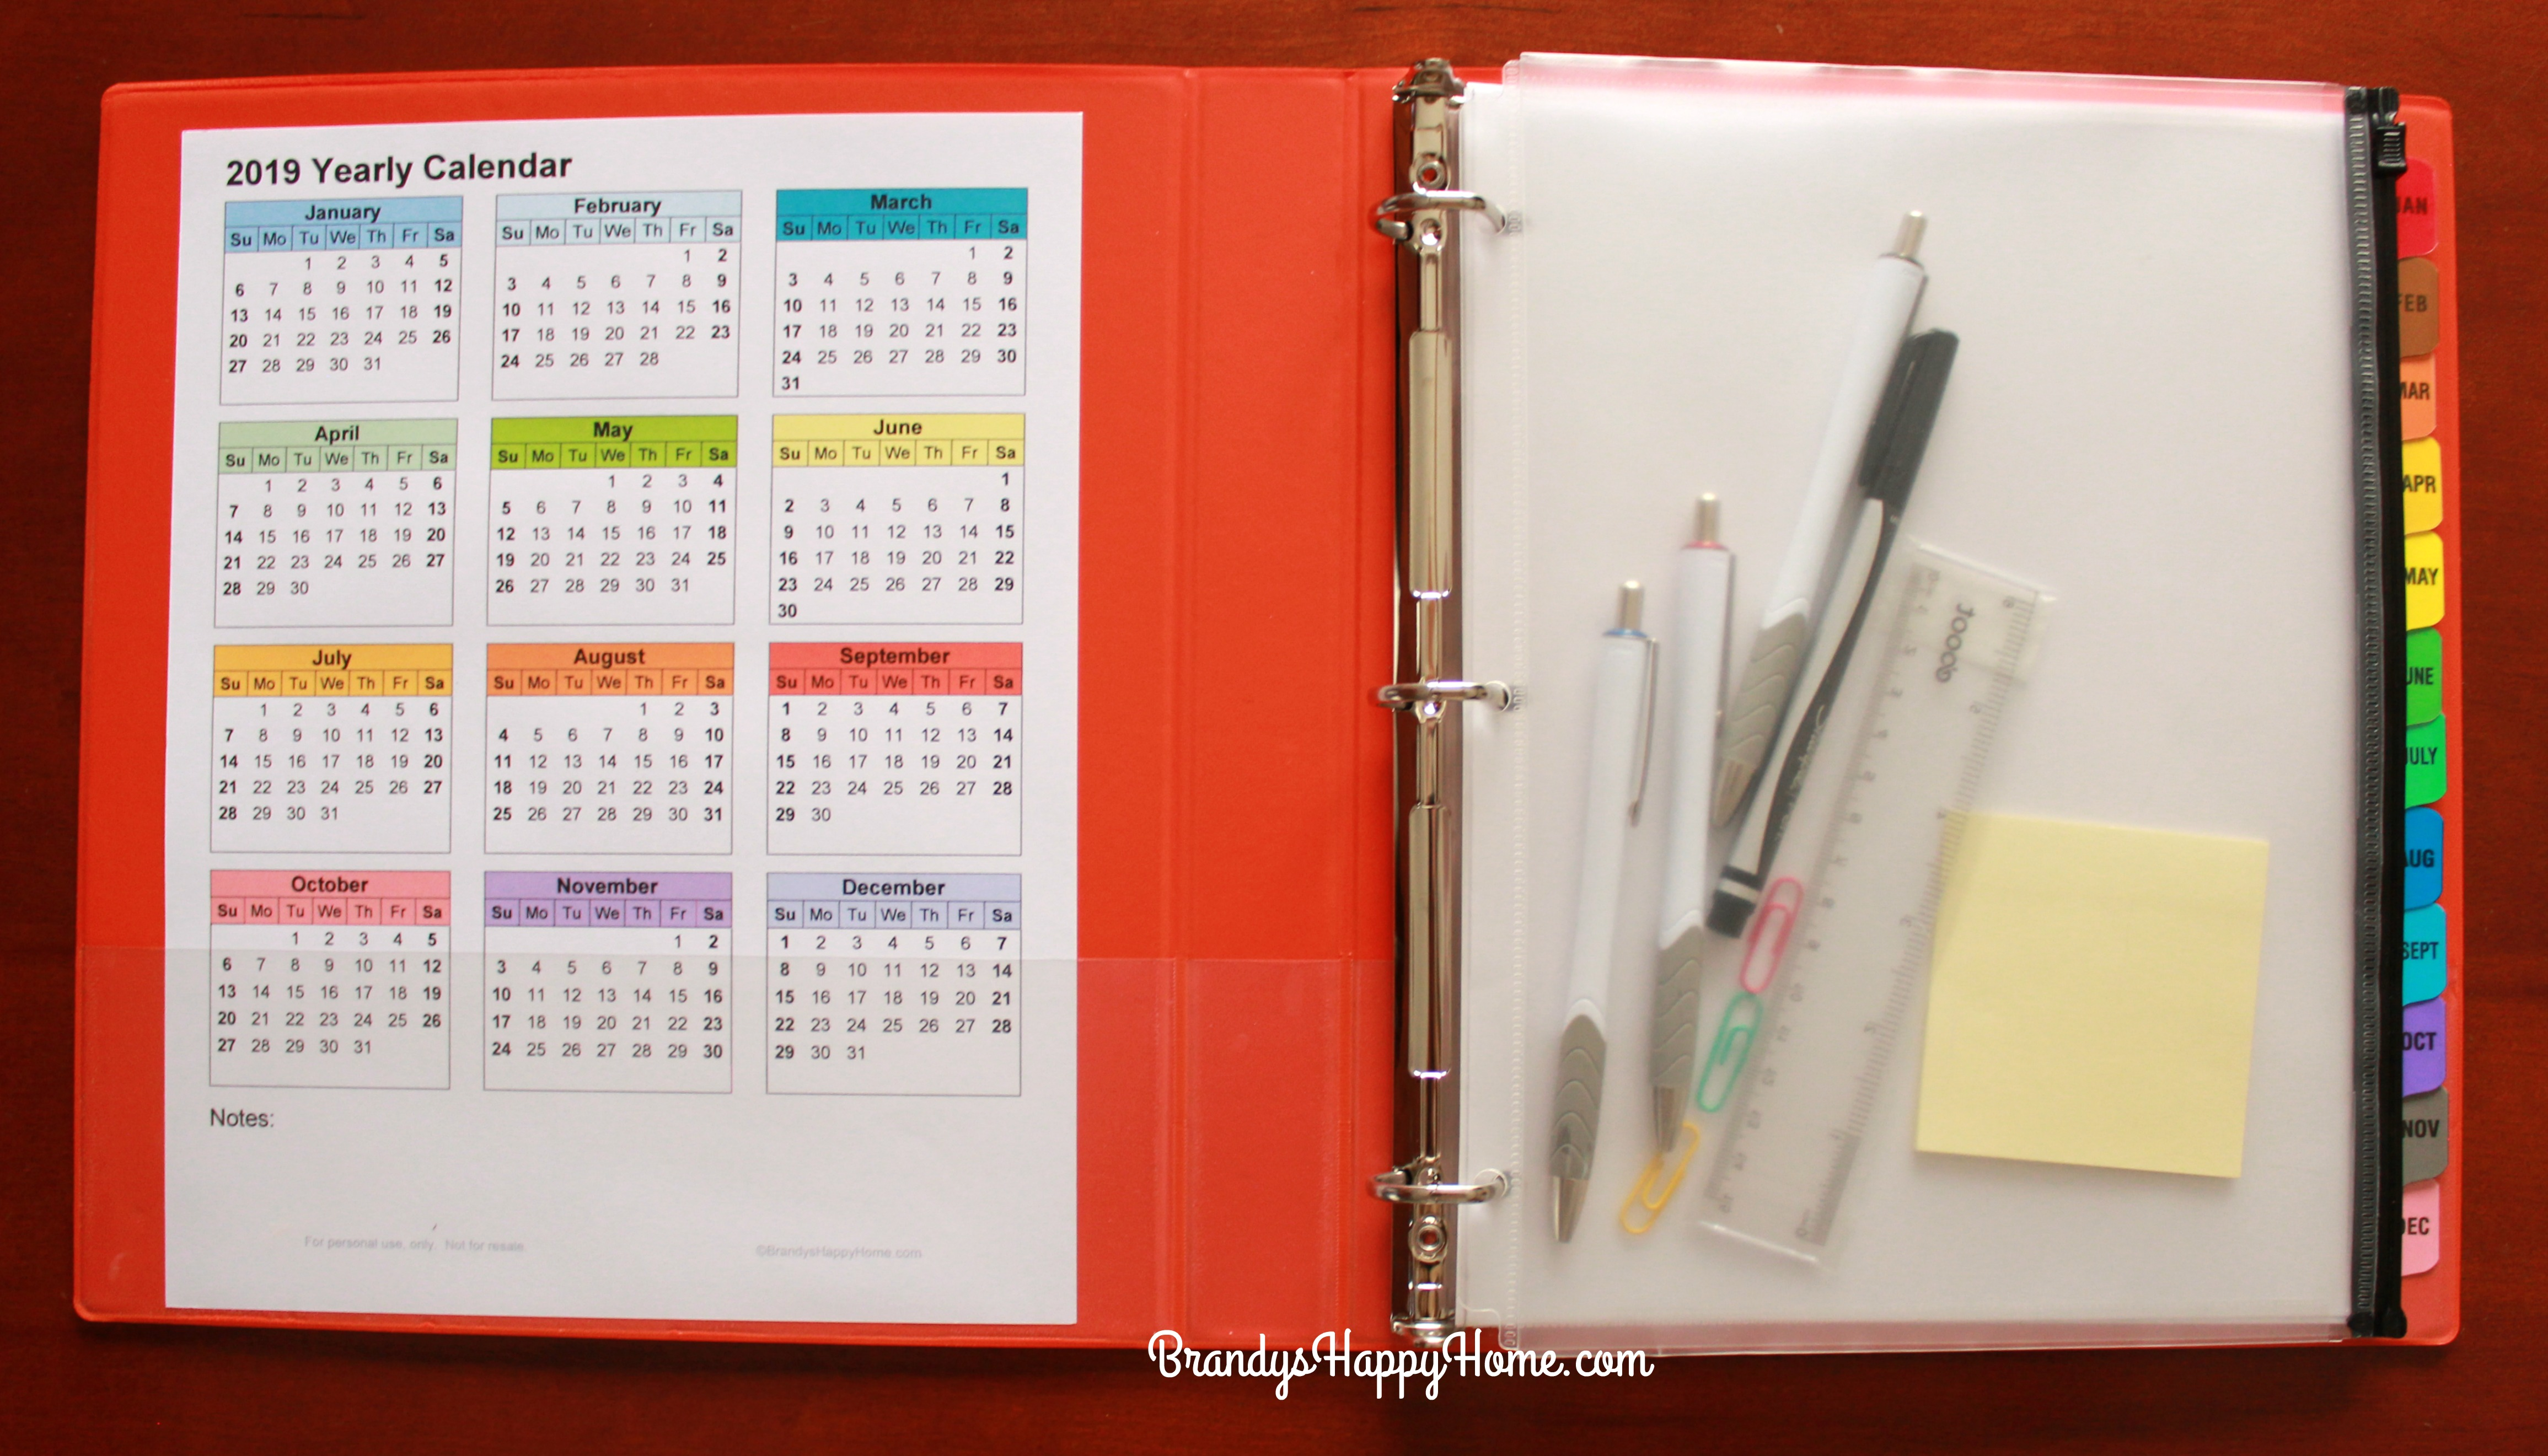 FREE 2019 DIY Calendar Planner Printables Homemade Ring Planners on personalized day planner, letter size planner, printable planner, d*i*y planner, daily planner, 3 prong planner, monthly planner, business planner, small three-ring planner,